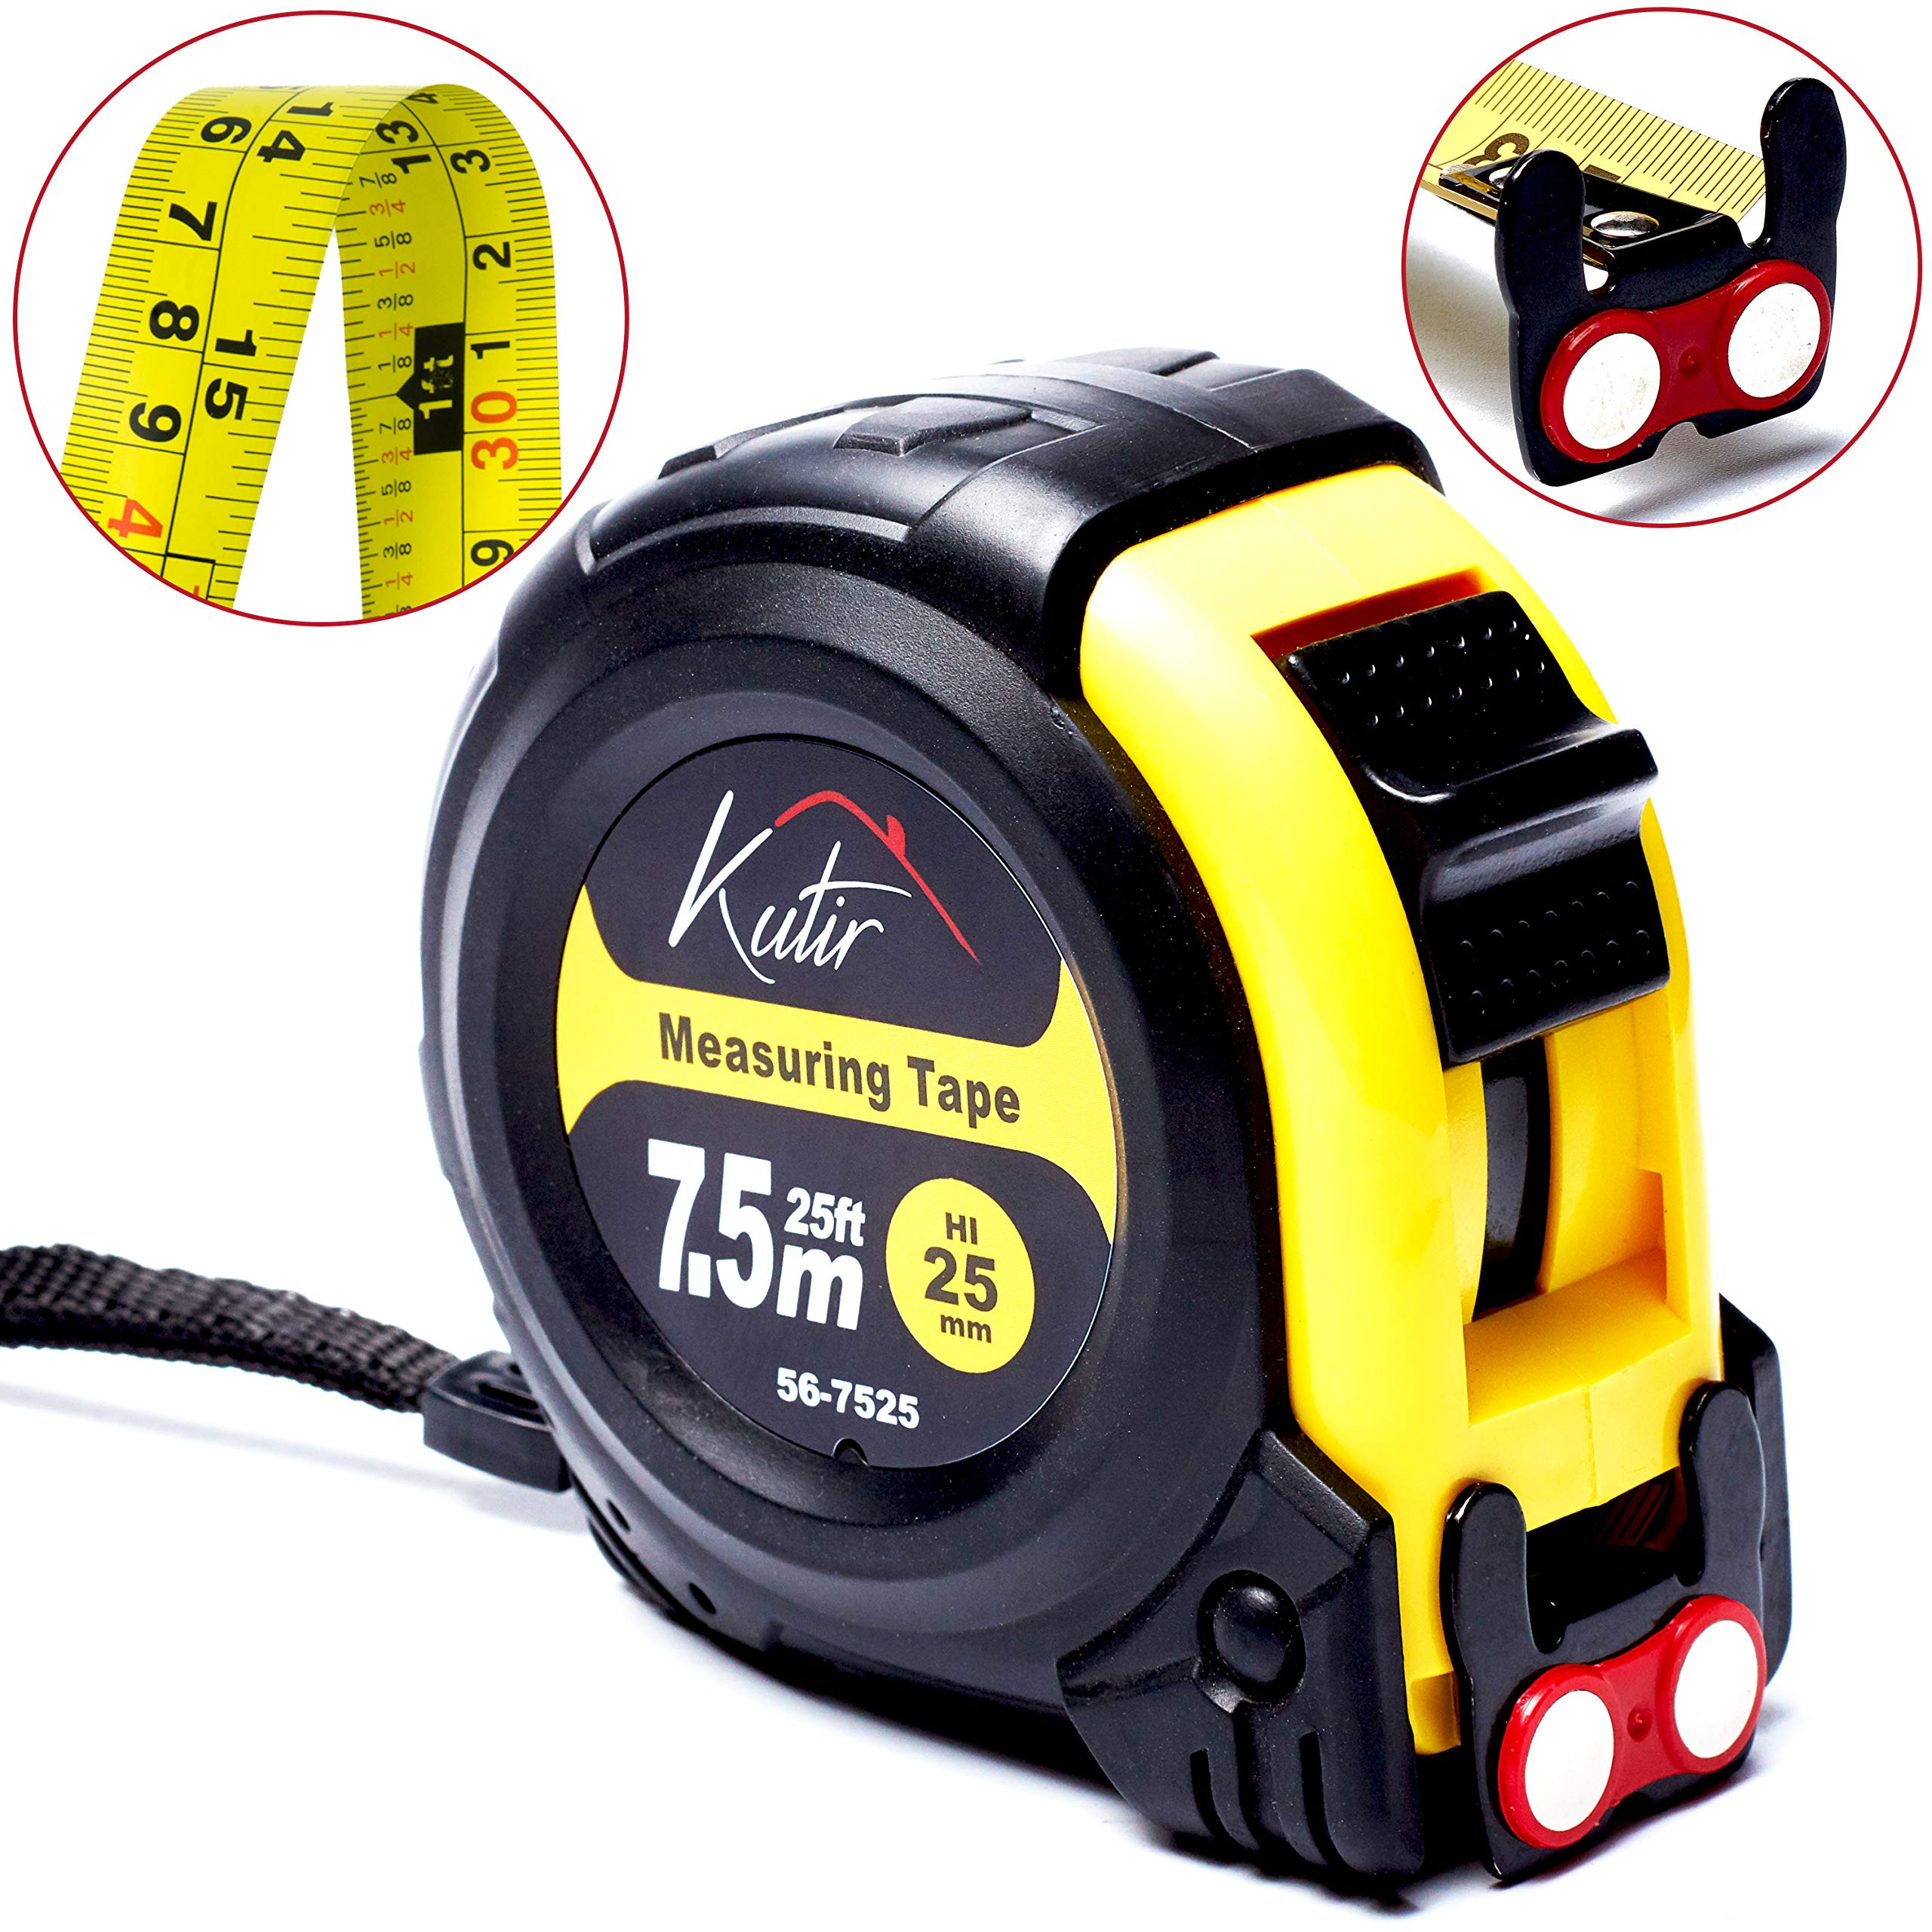 Measuring Tape Measure By Kutir - EASY TO READ 25 Foot BOTH SIDE DUAL RULER, Retractable, STURDY, Heavy Duty, MAGNETIC HOOK, Metric, Inches and Imperial Measurement, SHOCK ABSORBENT Solid Rubber Case by Kutir